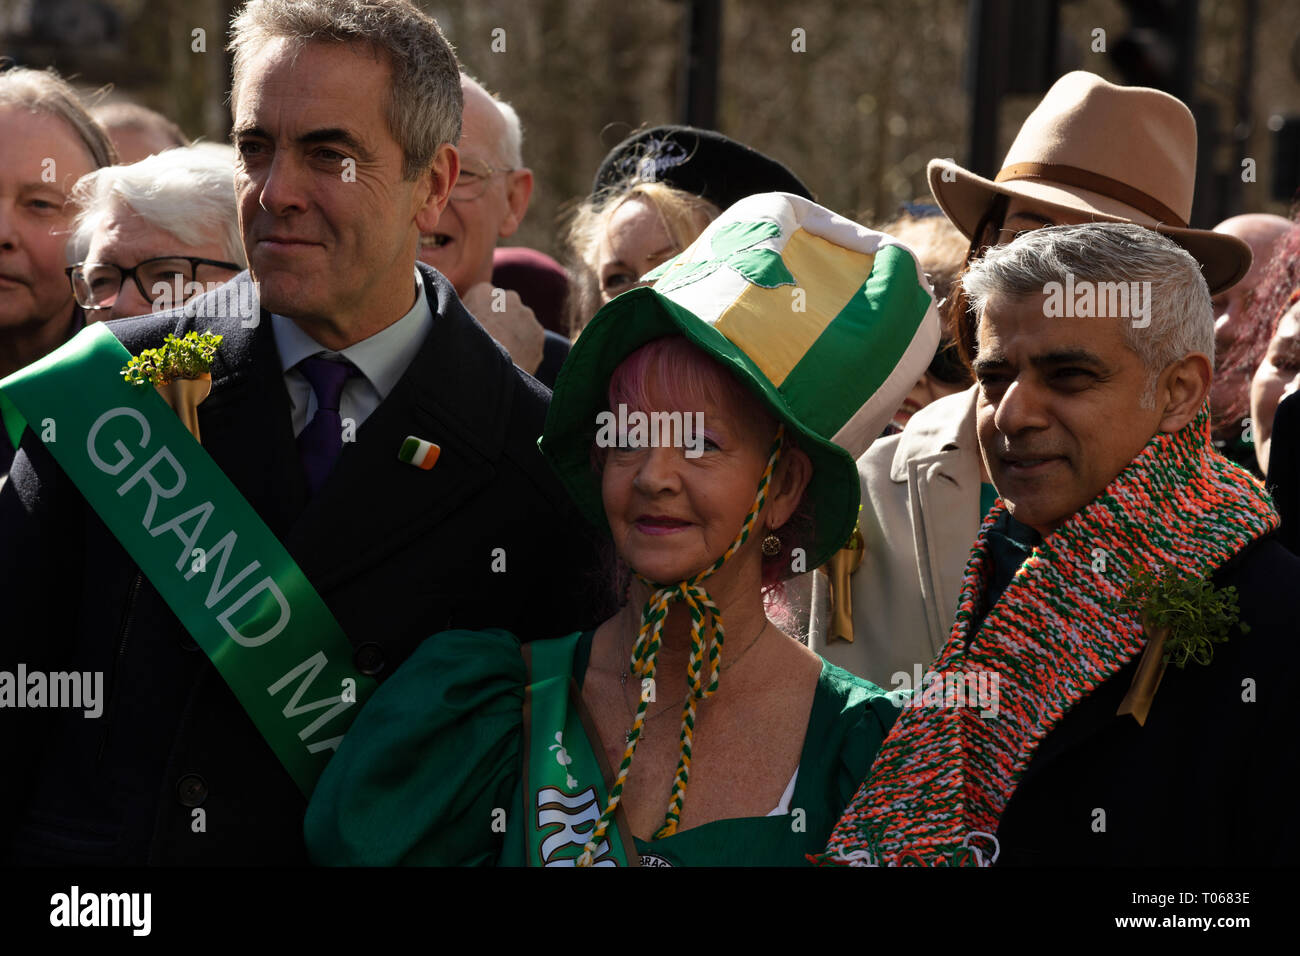 London, UK. 17th March, 2019. The mayor of London, Sadiq Khan, receives a warm scarf in the Irish colours orange, white and green and opens the St Patrick's Day Parade London near Piccadilly, UK, today. Credit: Joe Kuis / Alamy Live News - Stock Image